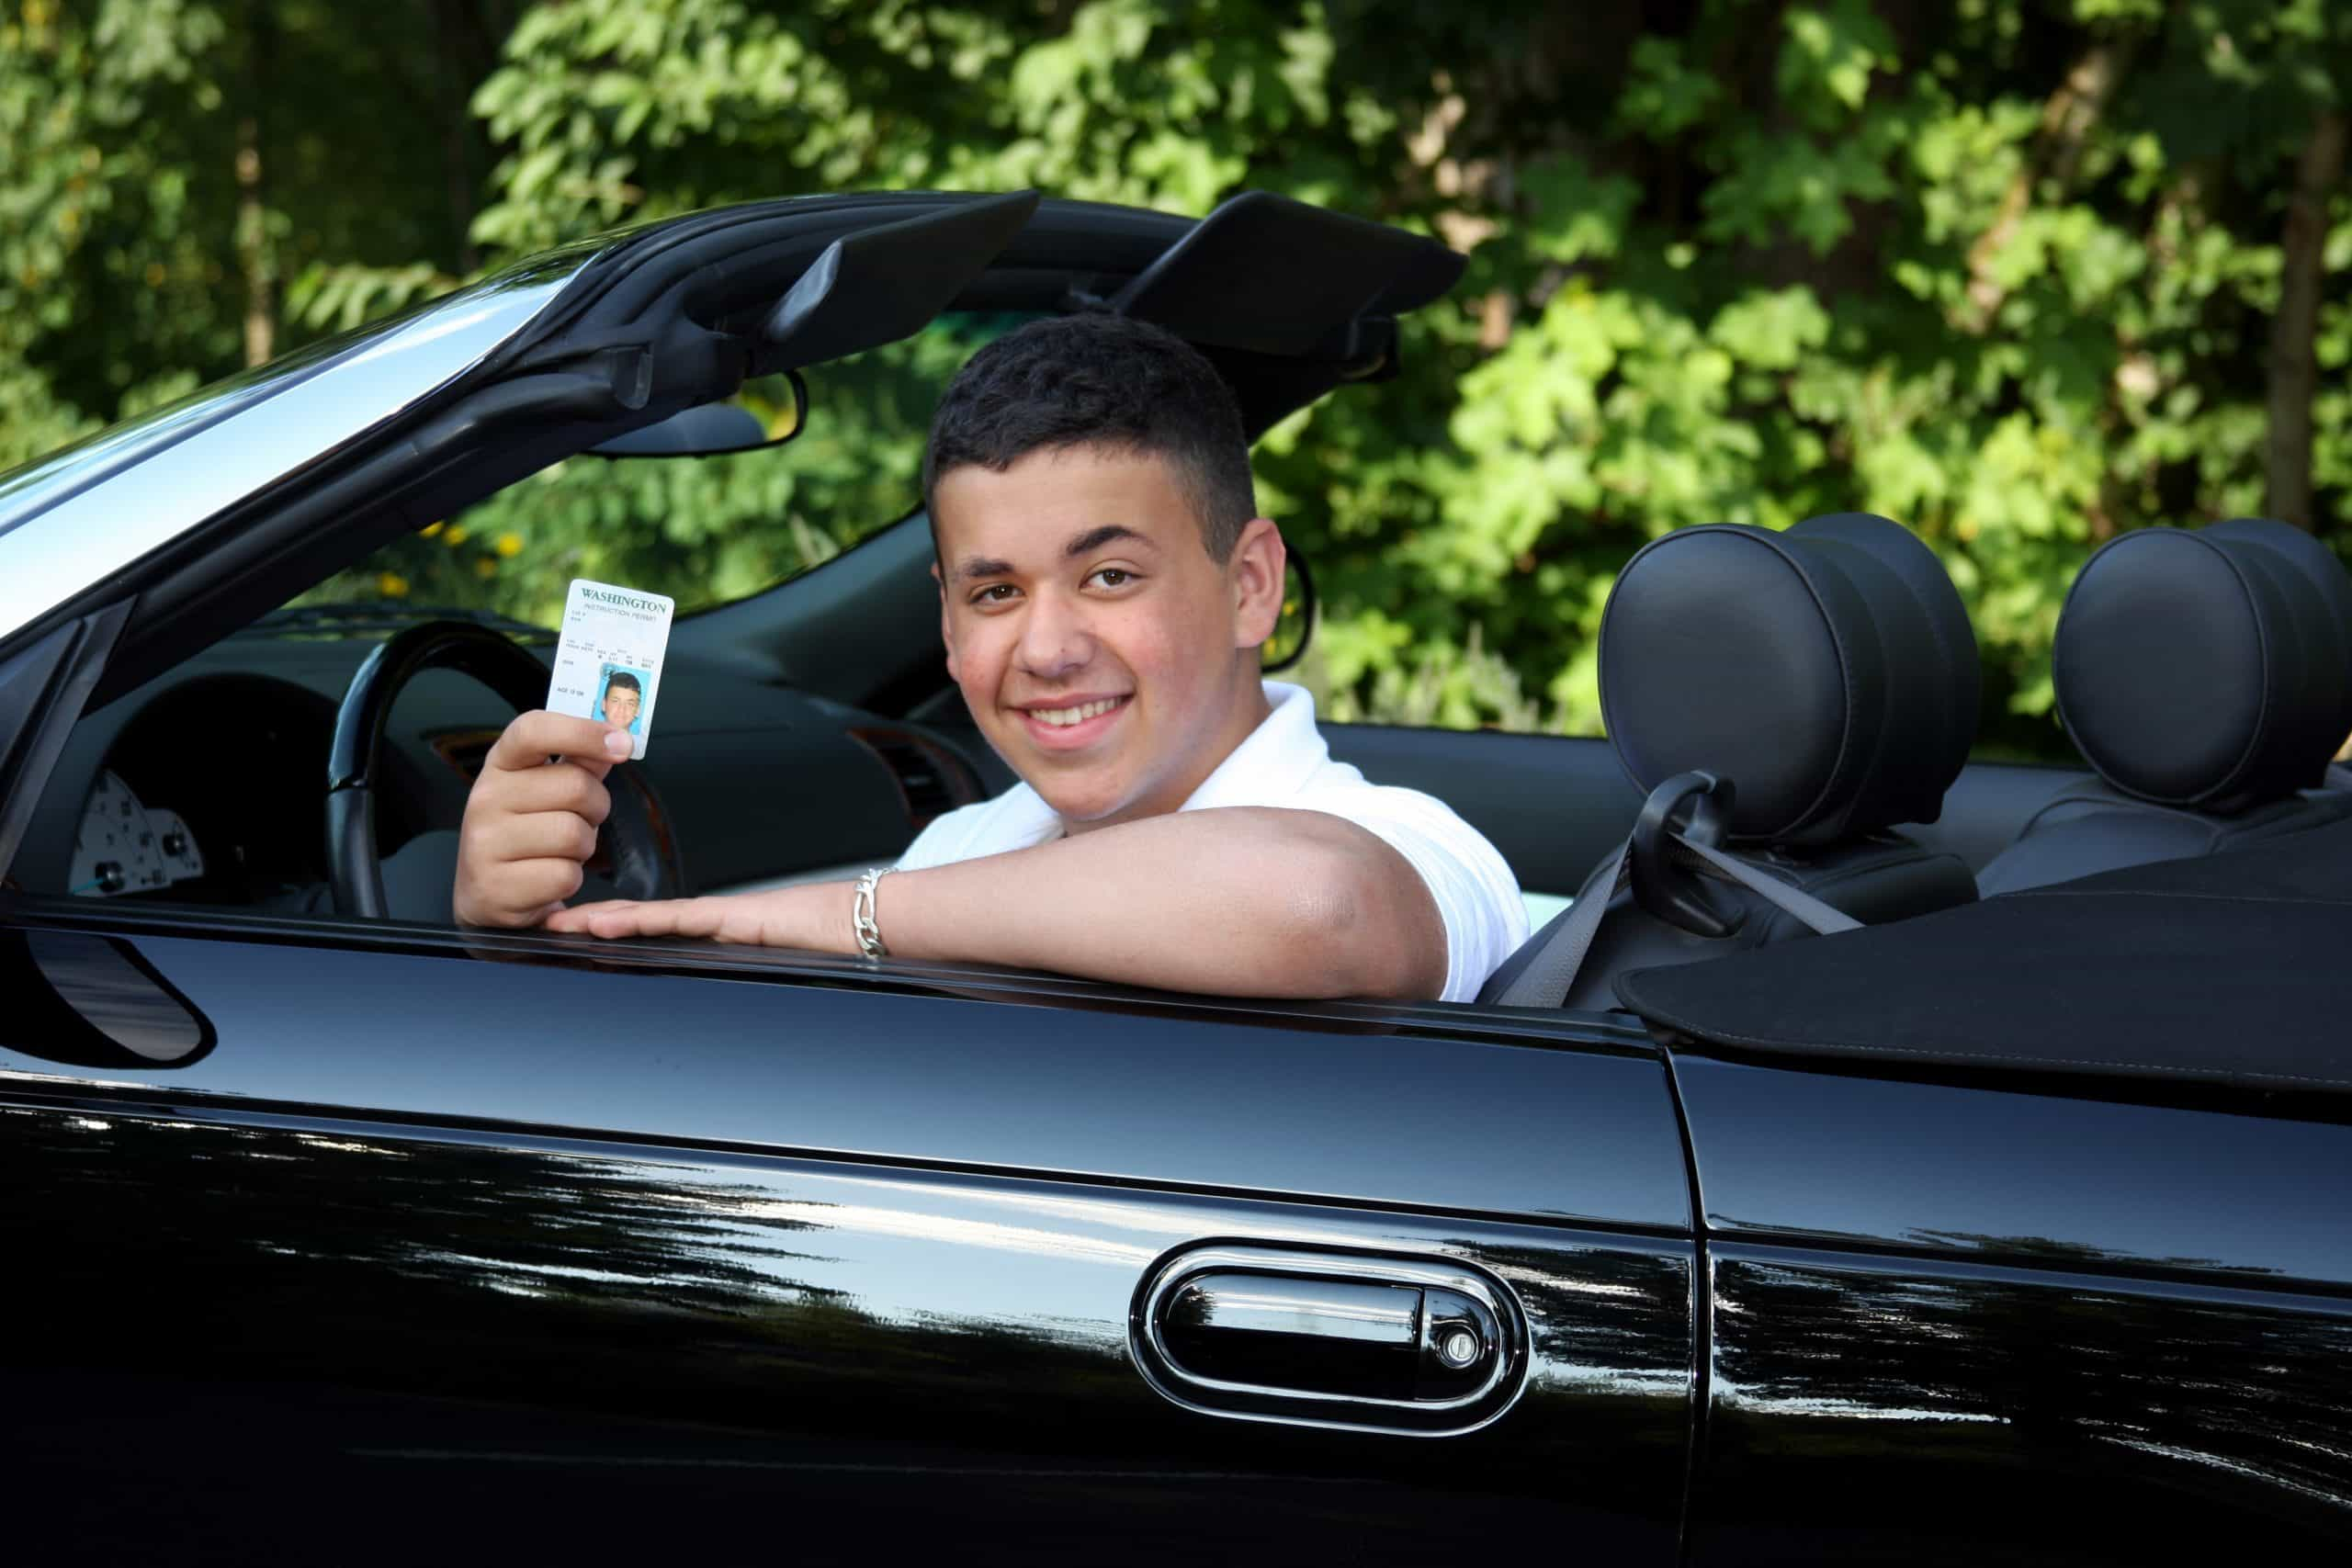 Teen with Driver's Permit